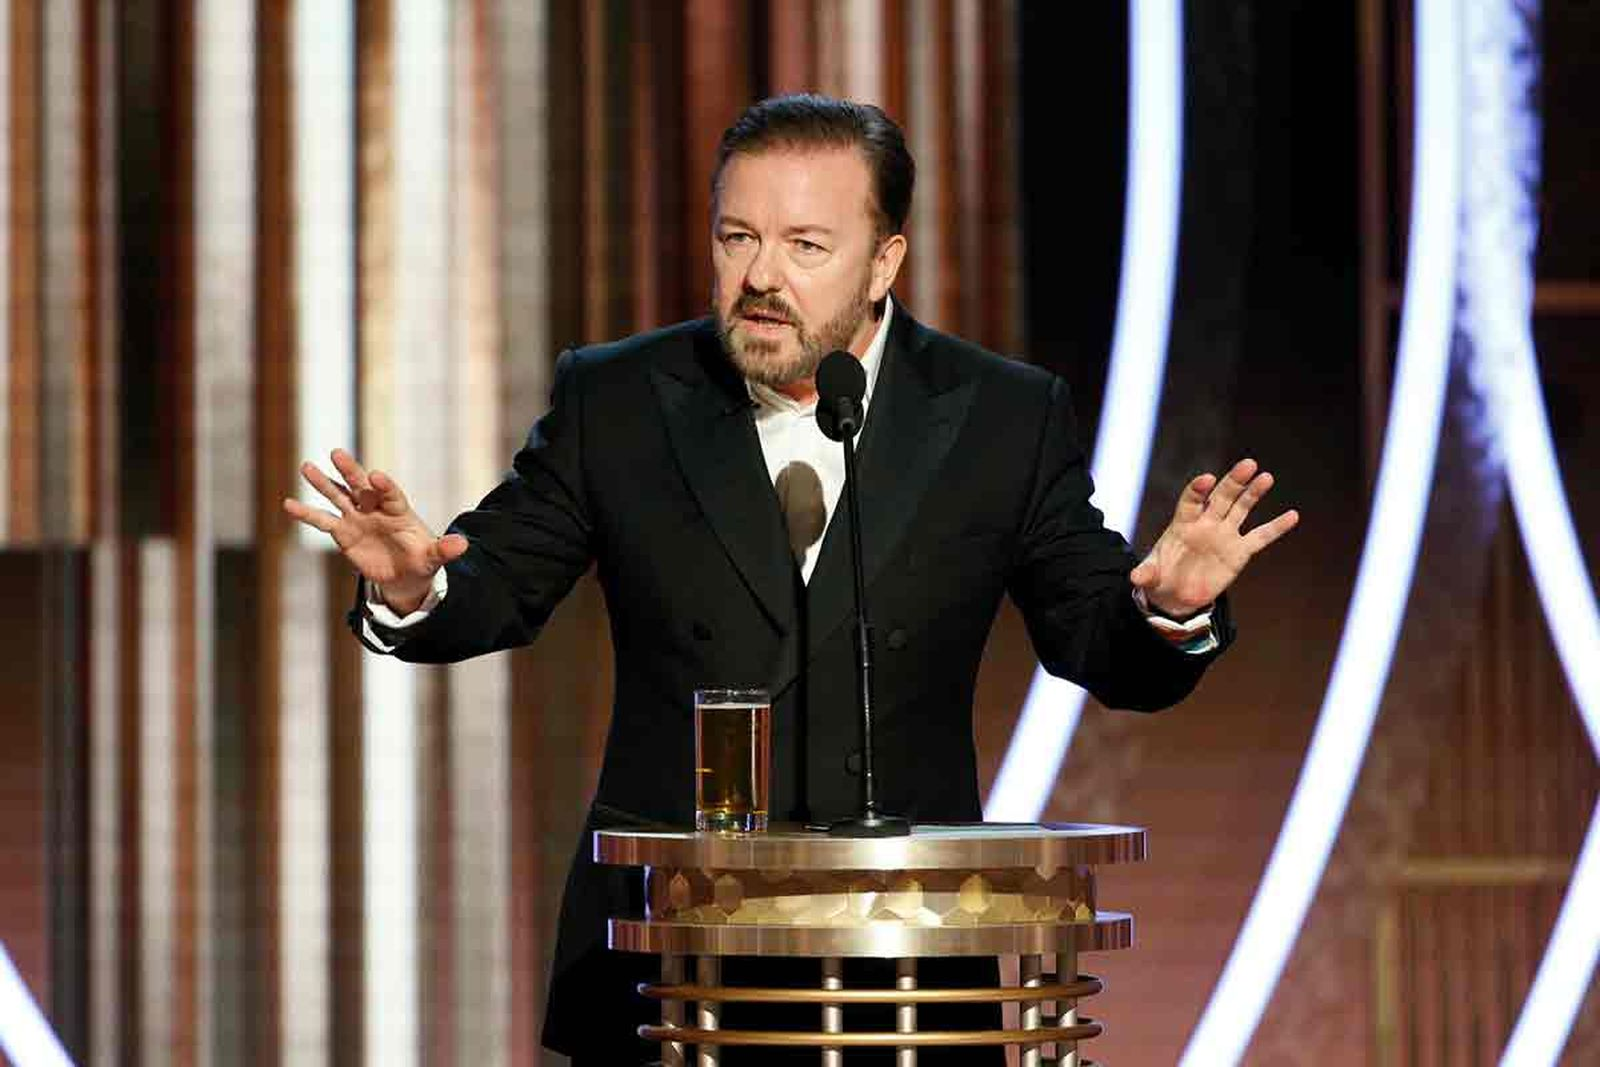 ricky-gervais-golden-globes-2020-opening-monologue-01